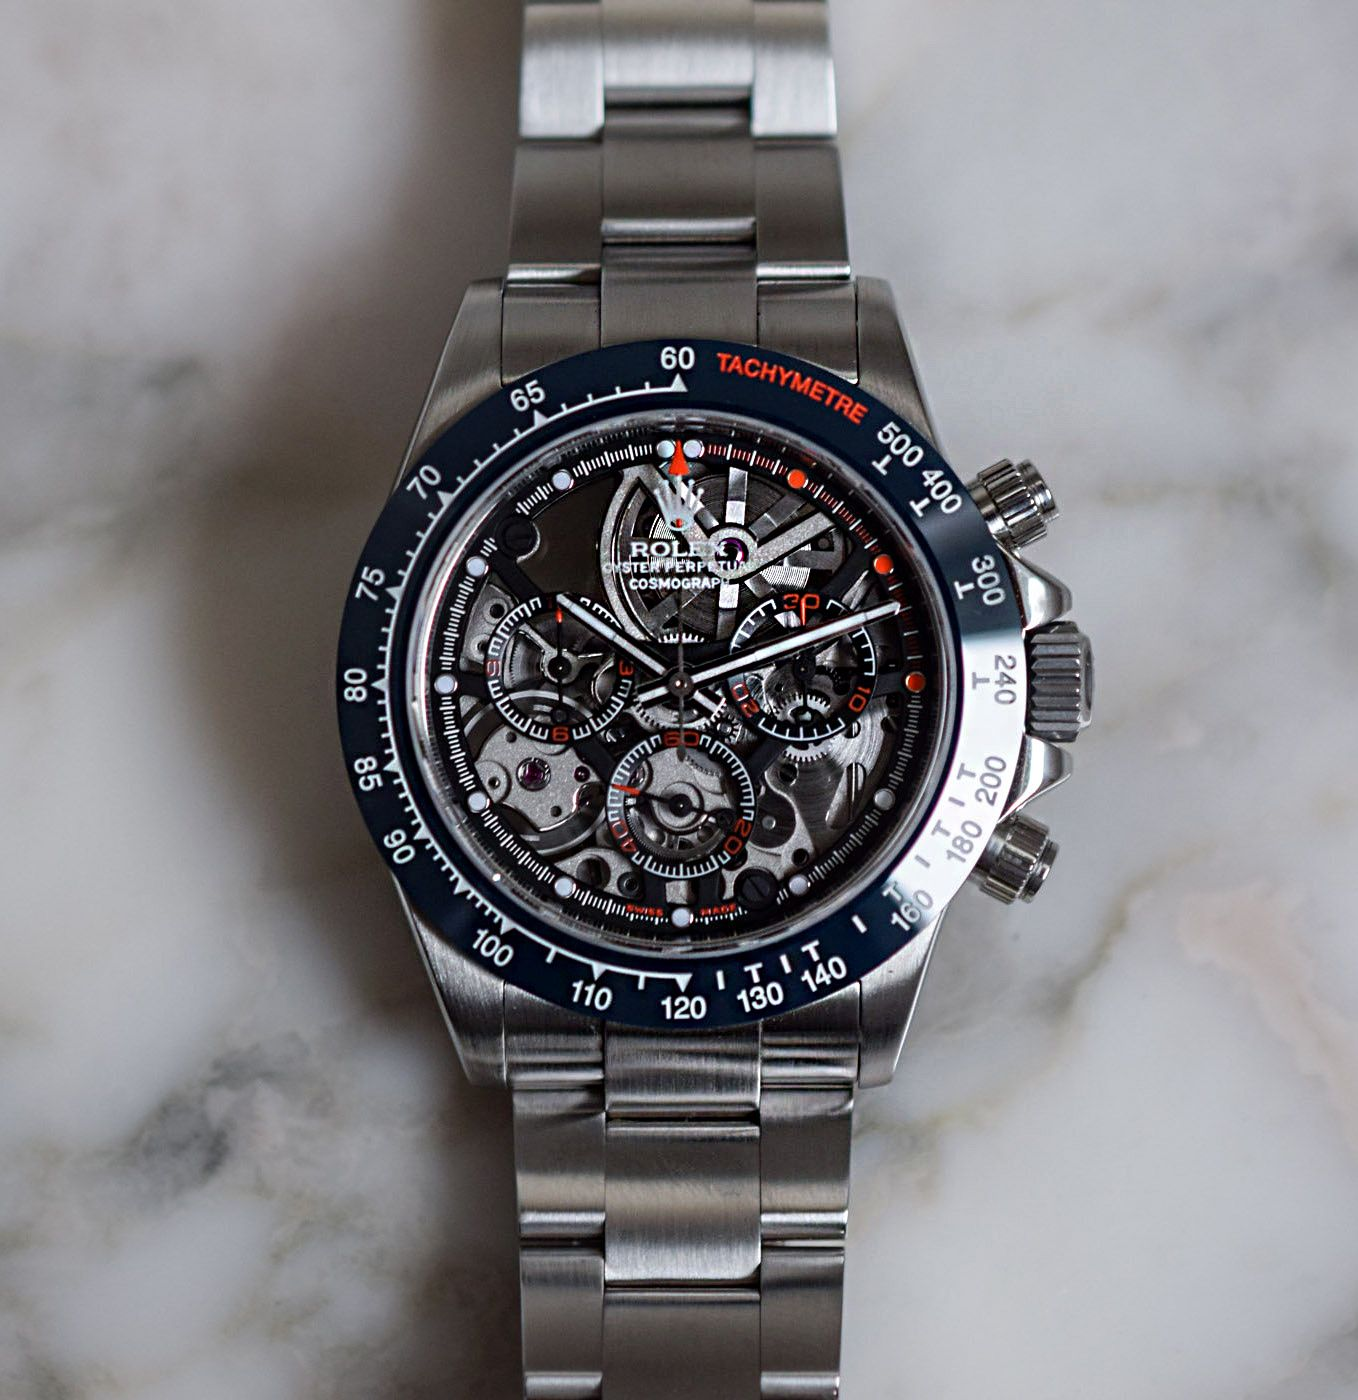 Pin by Aaron pod on Watches in 2020 Rolex, Rolex passion